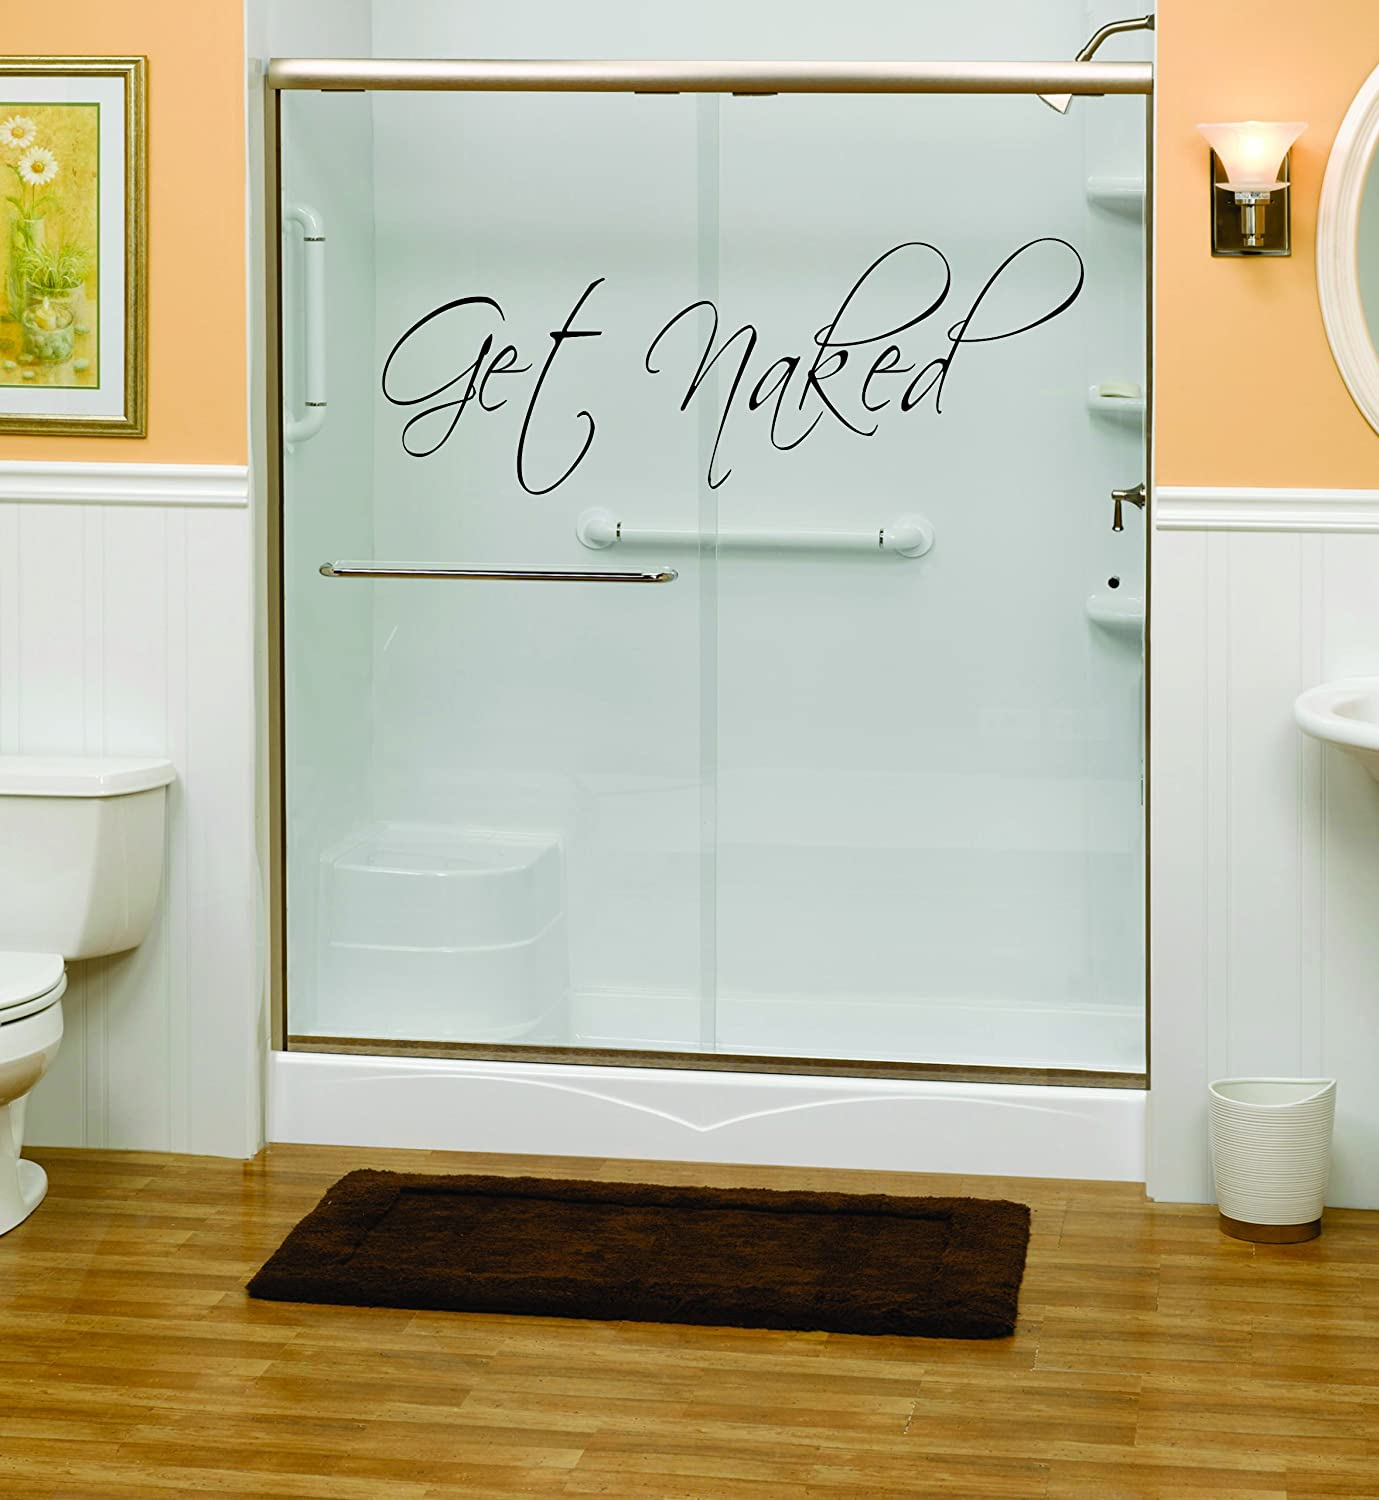 Get Naked Bathroom Shower Wall Decal Vinyl Art   Wall Decor Stickers    Amazon.com